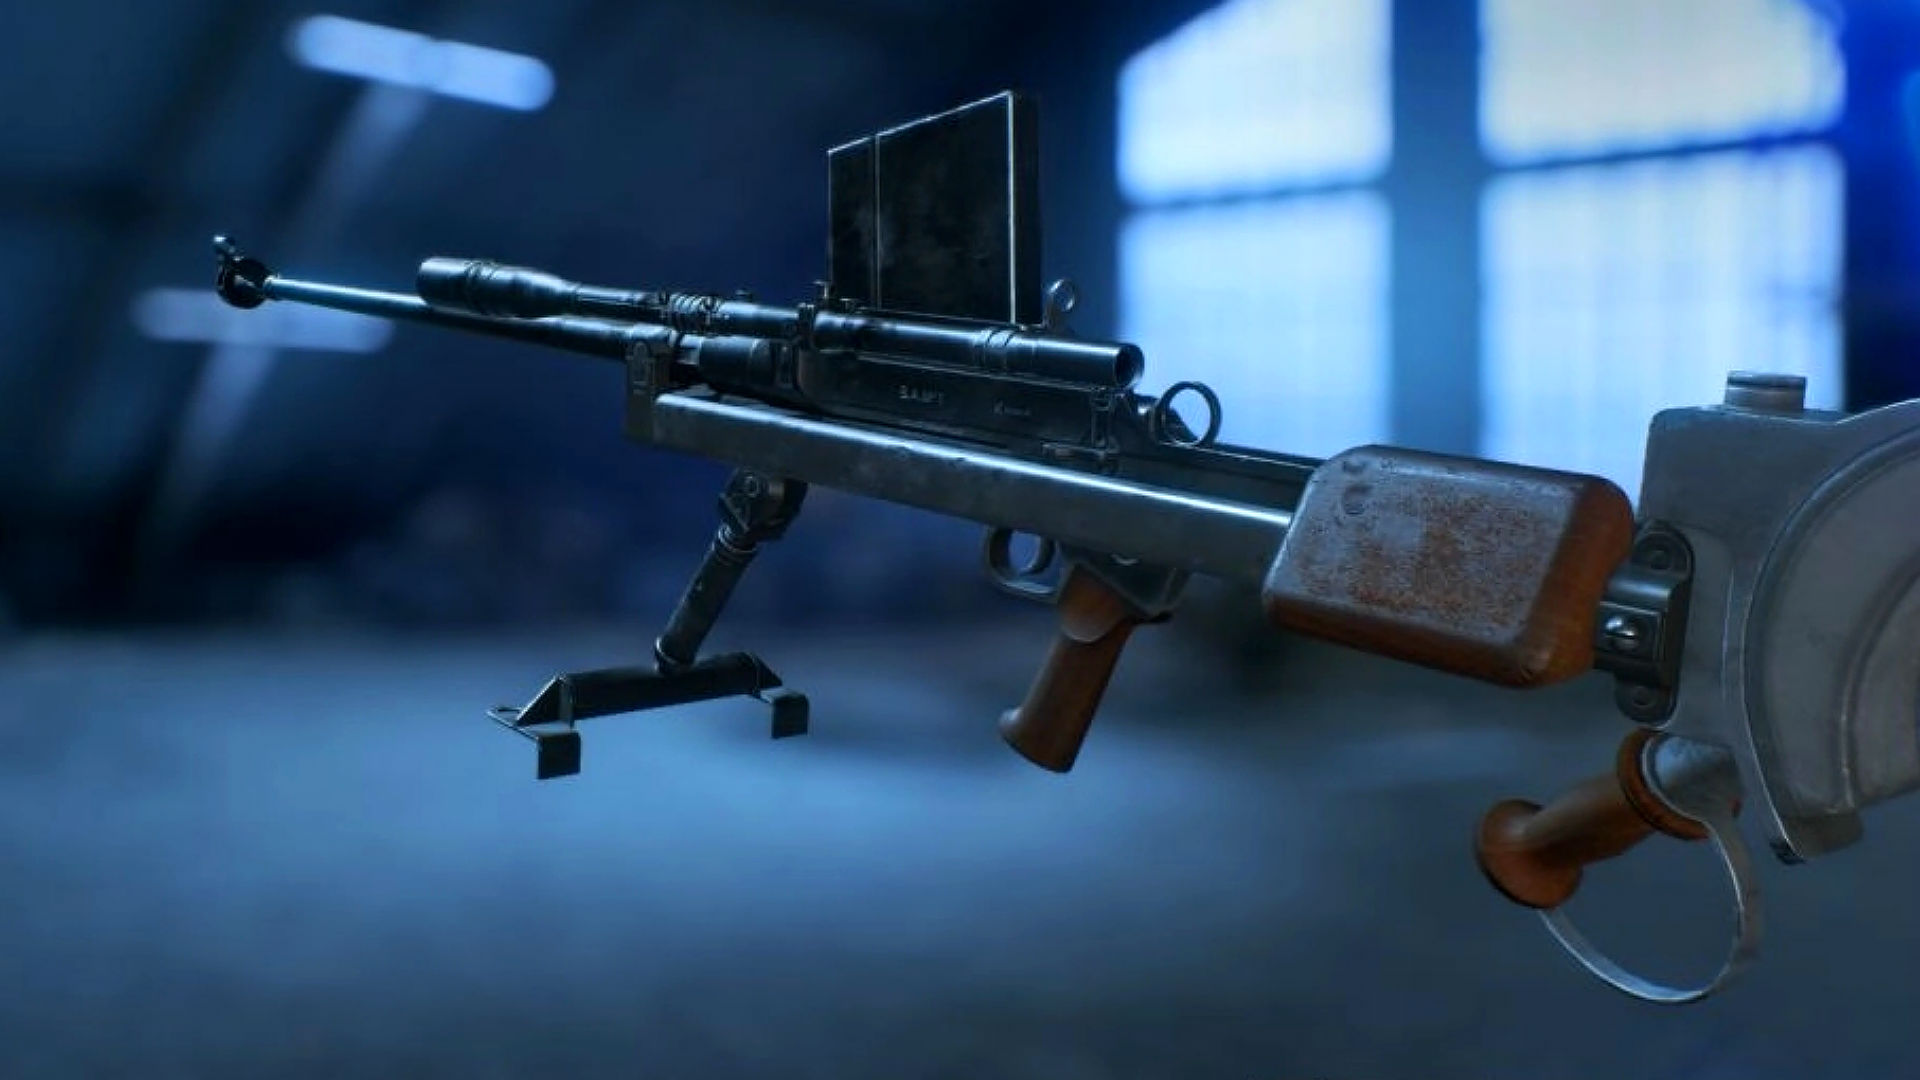 Battlefield 5 Boys AT Rifle: how one can get the anti-material rifle